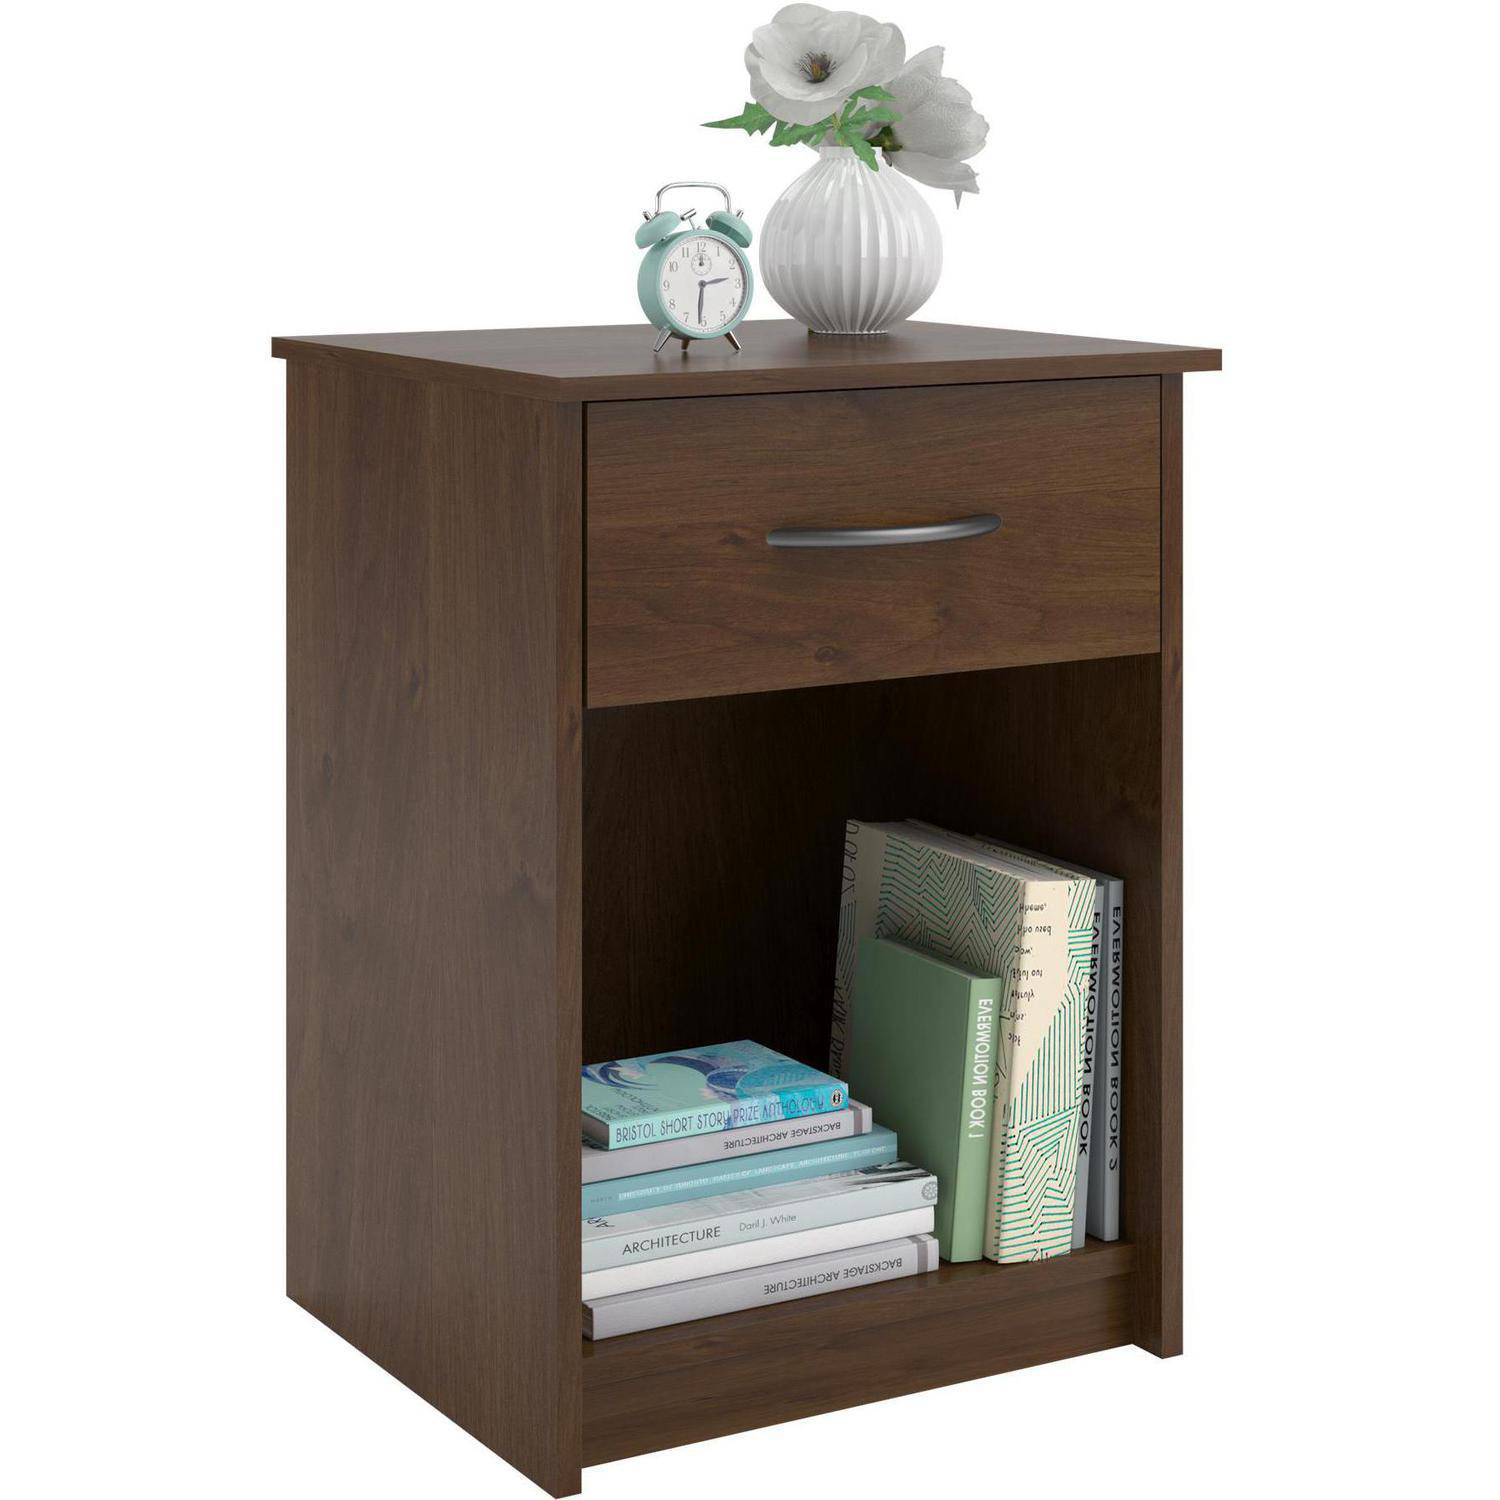 bedroom end tables with drawers inspiration tierra este nightstand night stand table drawer furniture unique stanley kids desk quarter sawn oak disney world restaurant